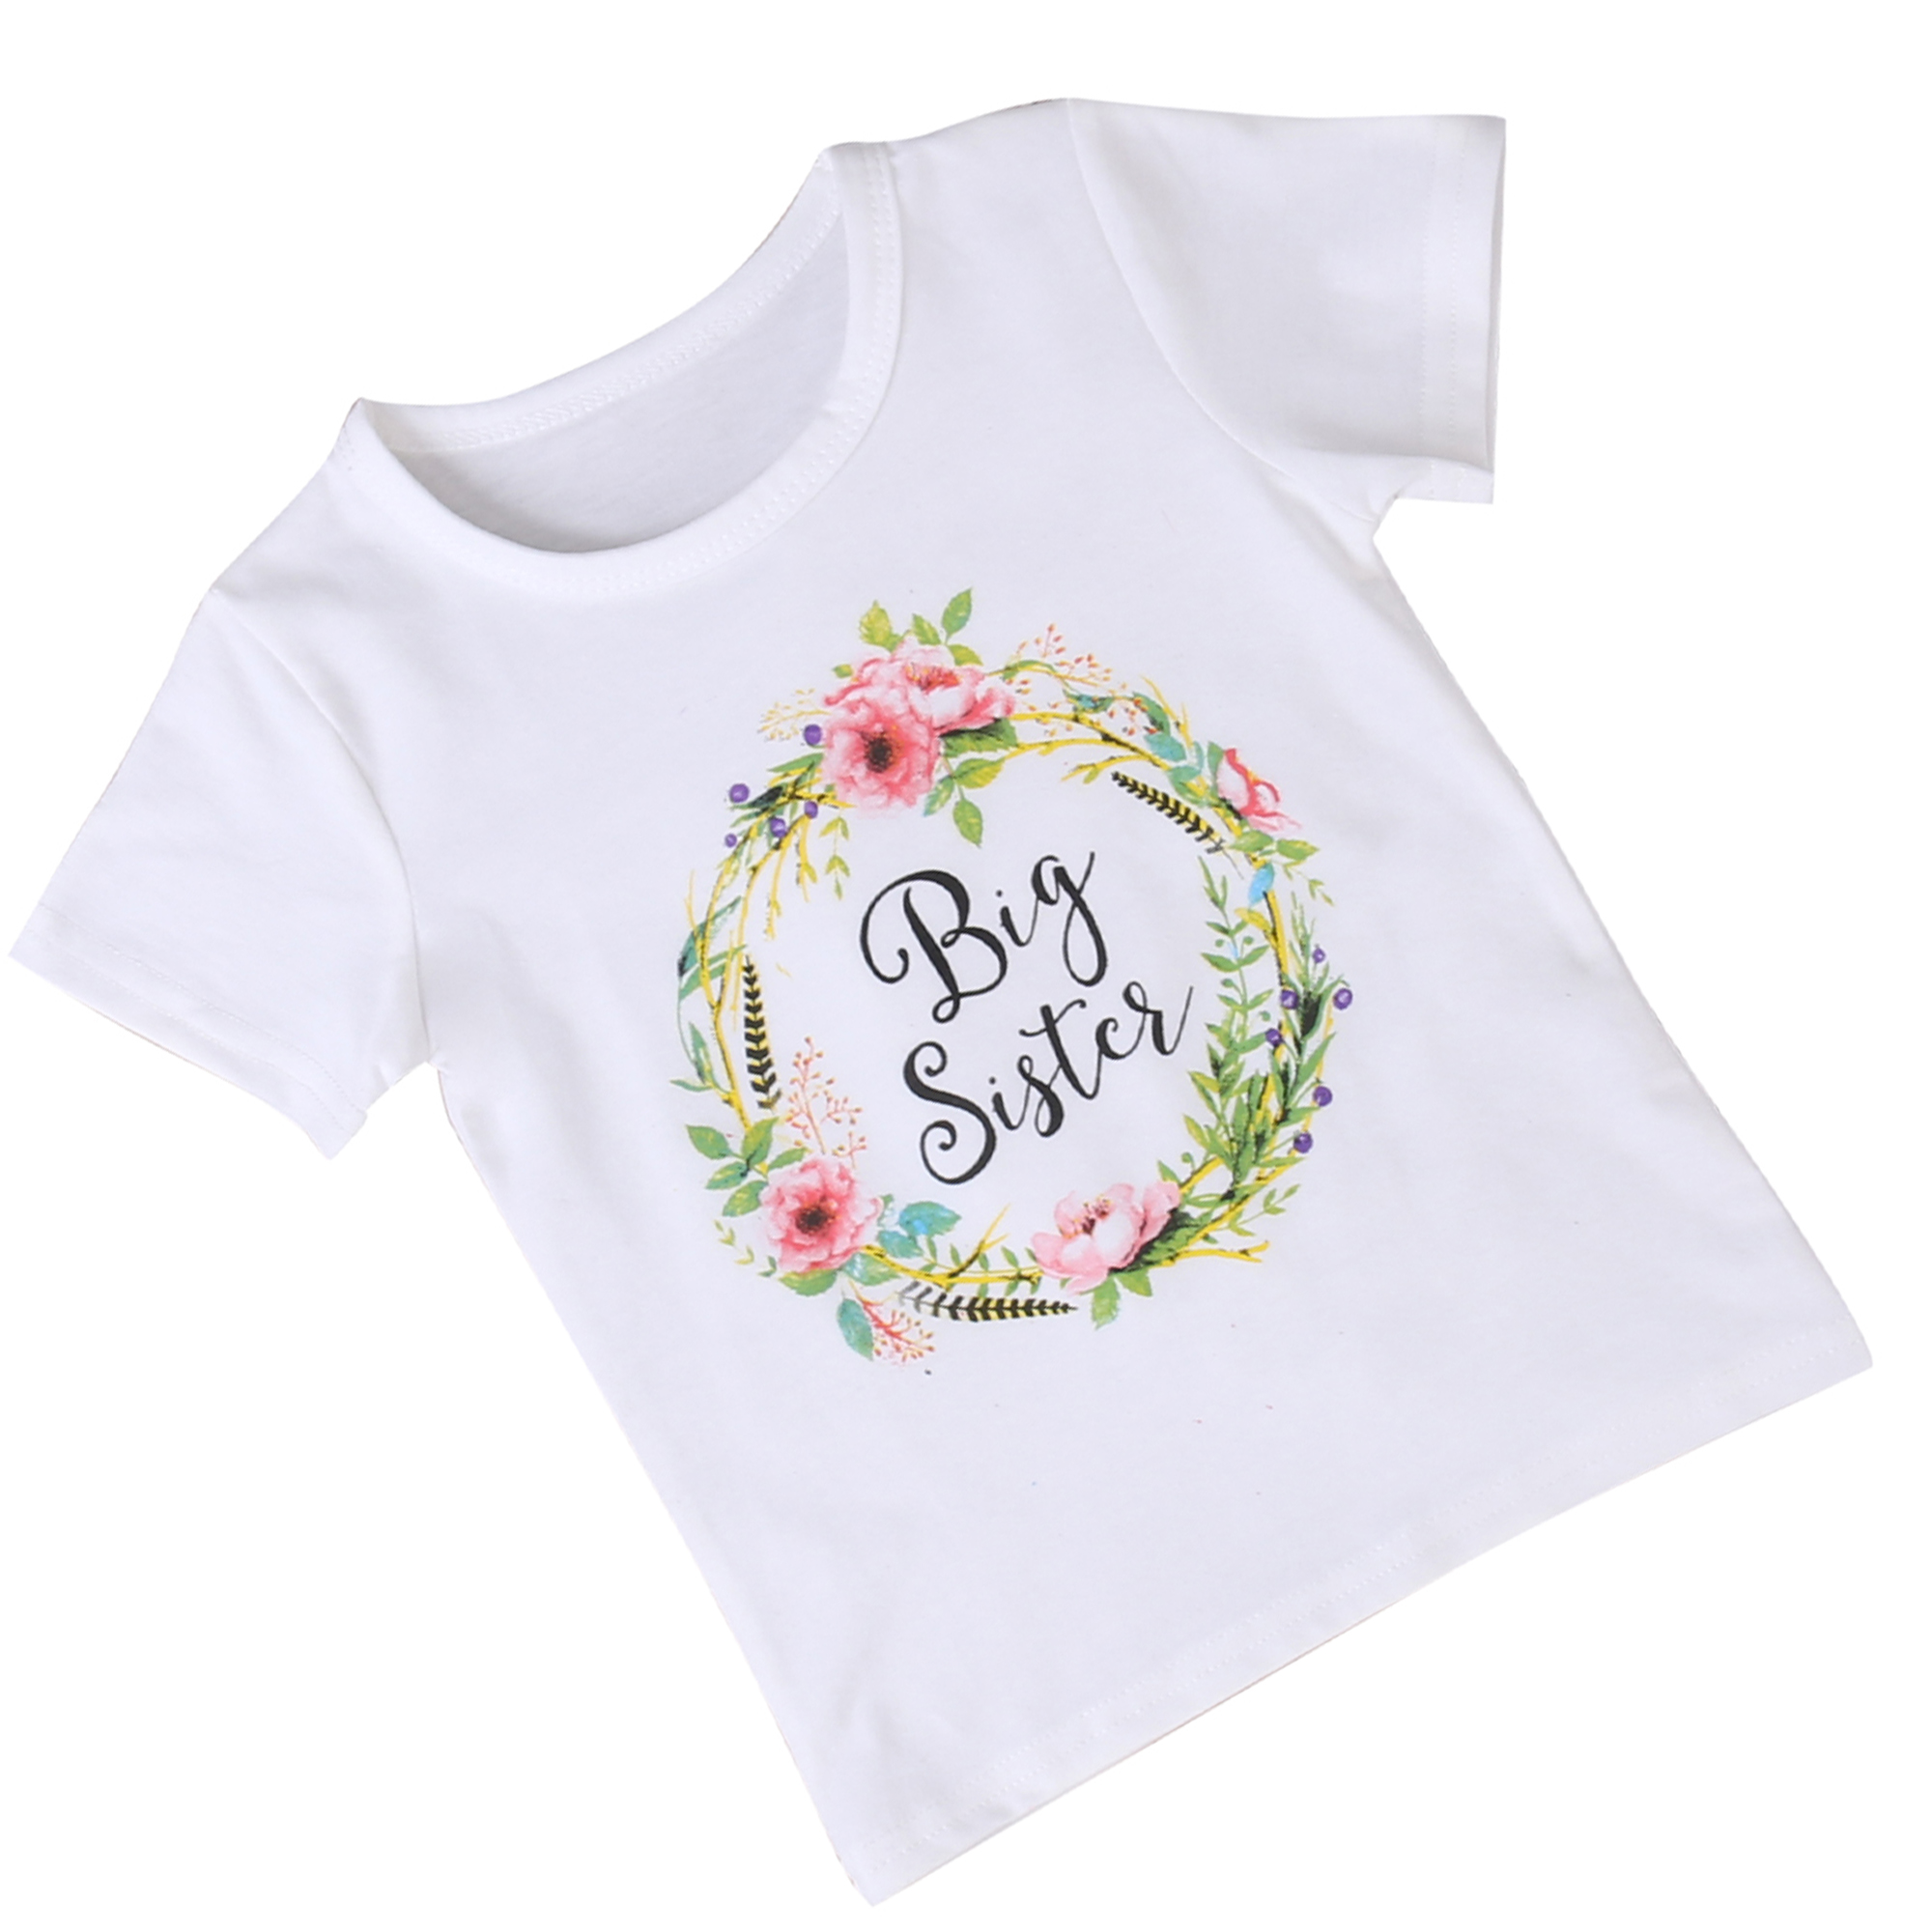 Soly Tech Little Big Sister Clothes Baby Girls Romper T-Shirt and Long Pants Set